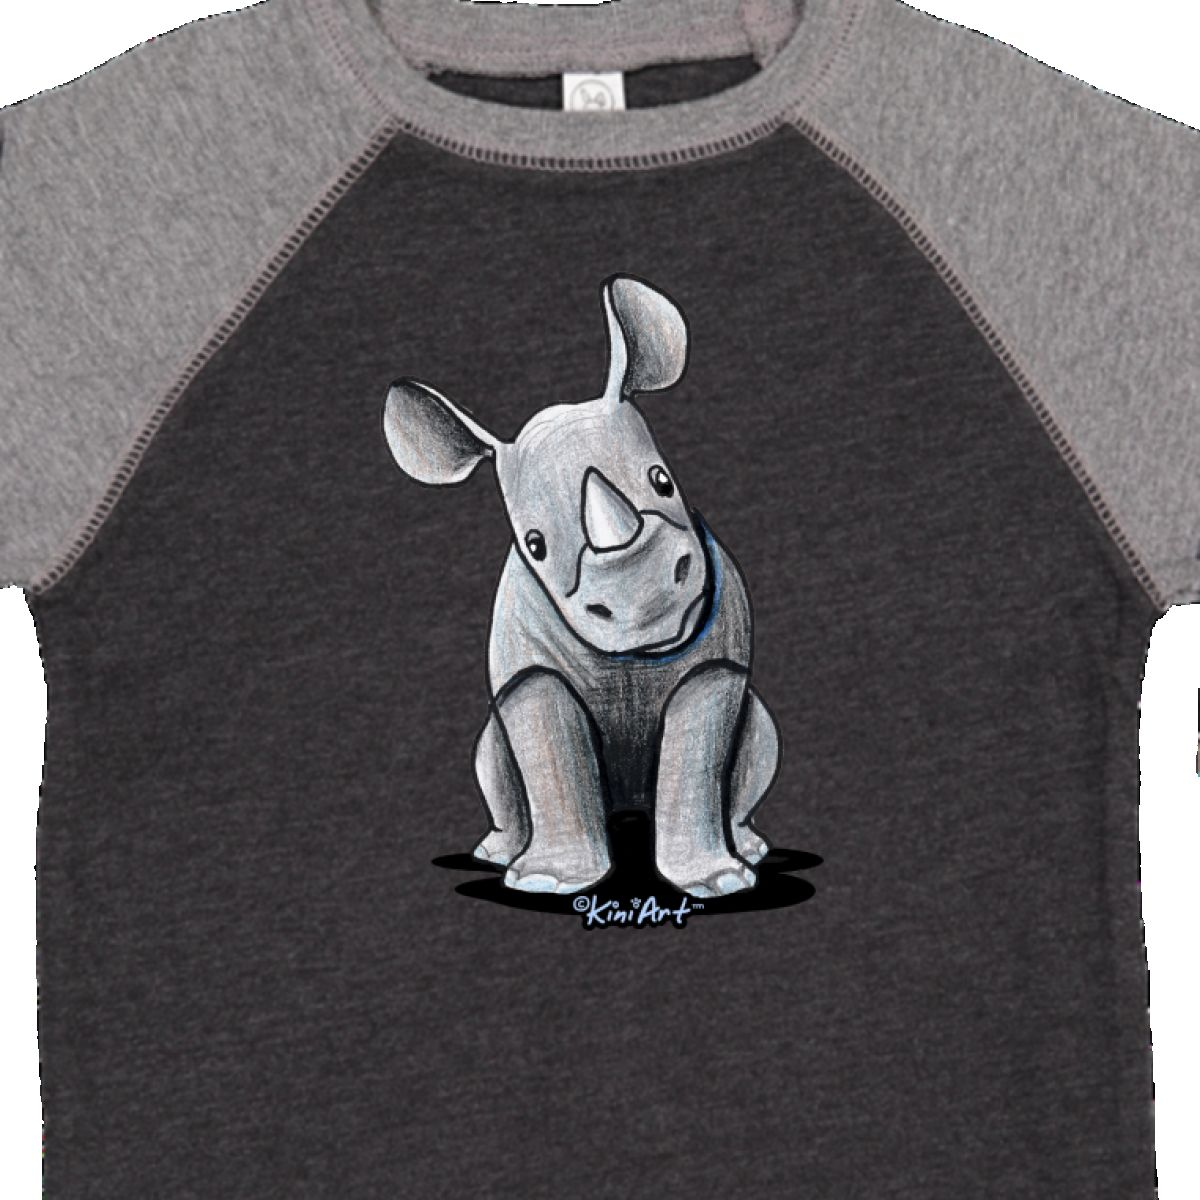 Inktastic-Curious-Rhinos-Toddler-T-Shirt-KiniArt-Rhino-Rhinoceros-Art-Cartoon thumbnail 30